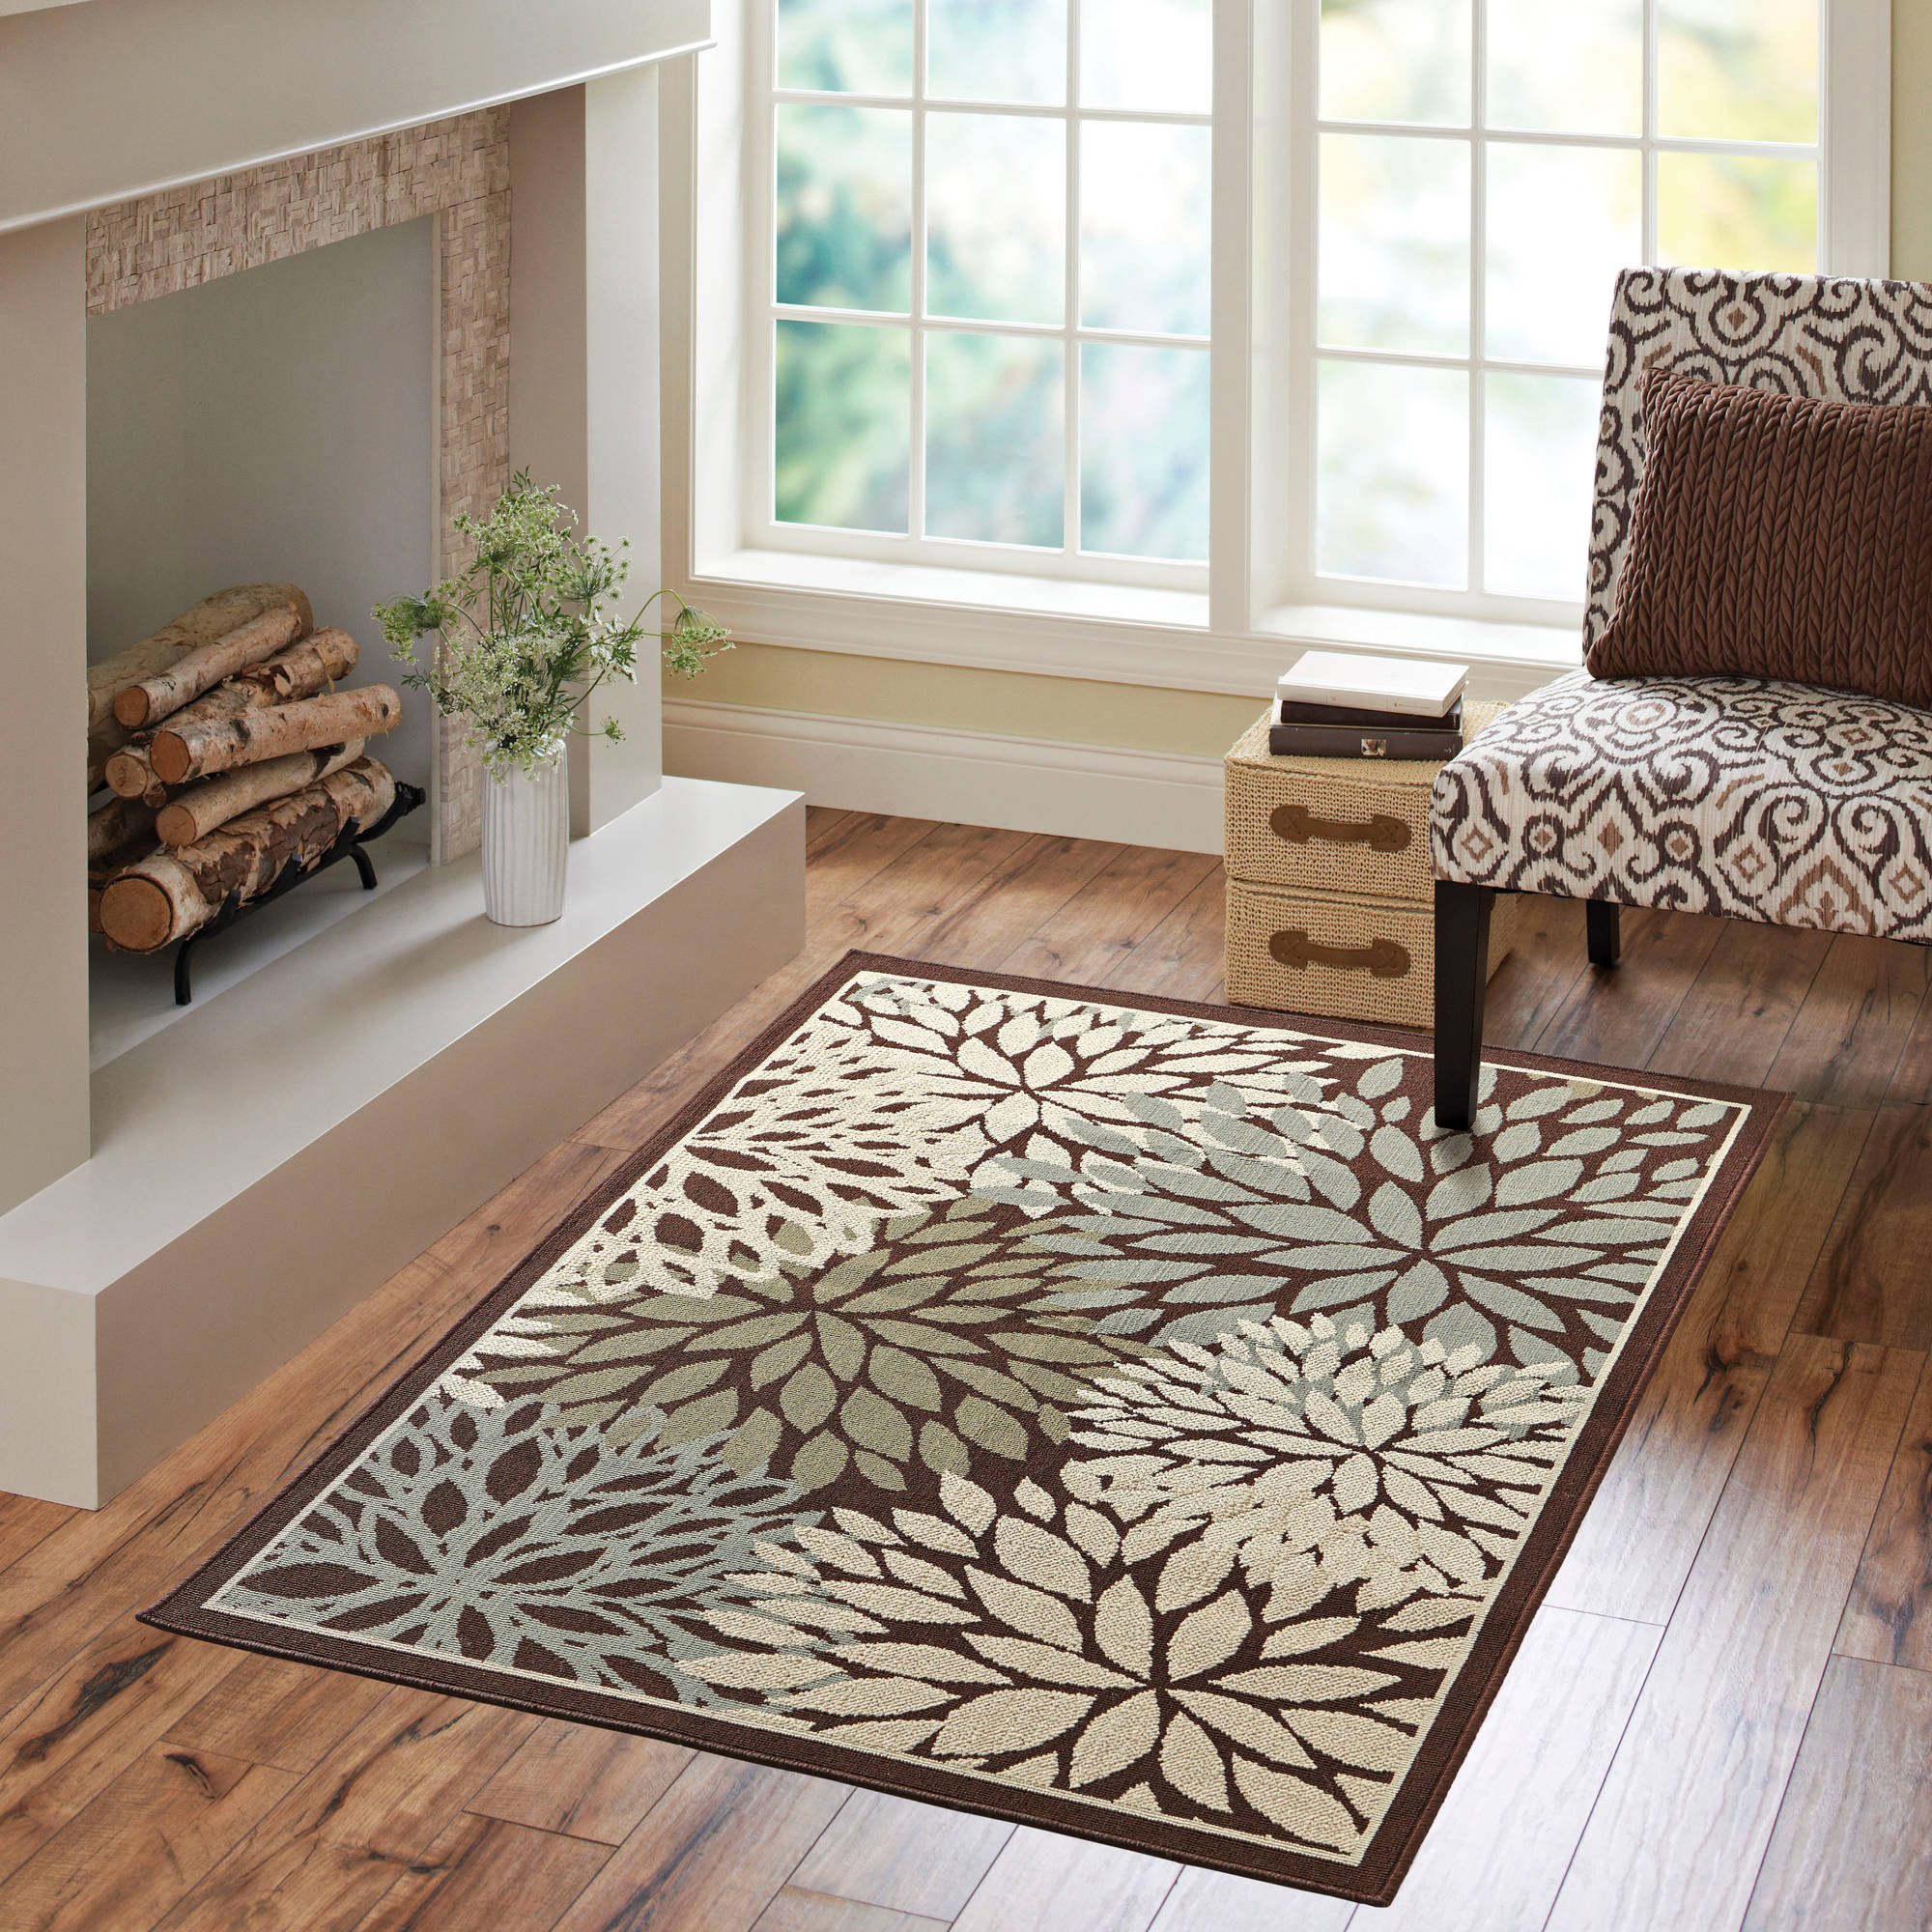 Better Homes and Gardens Mixed Floral Rug, Dark Brown